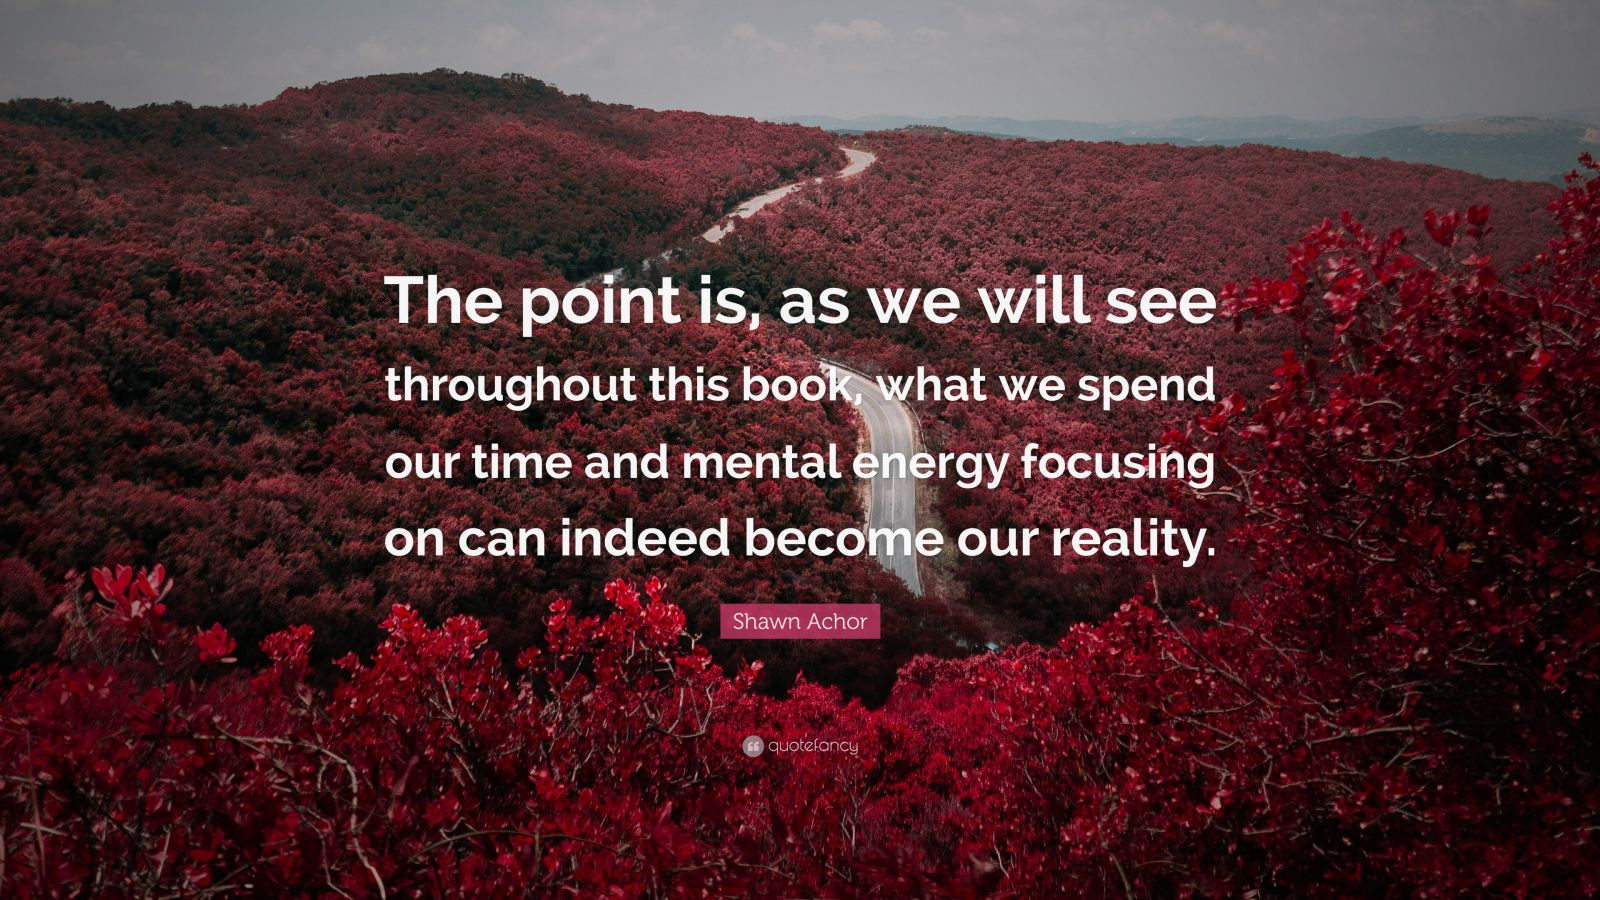 """Shawn Achor Quote: """"The point is, as we will see throughout this book, what we spend our time and mental energy focusing on can indeed become our reality."""""""